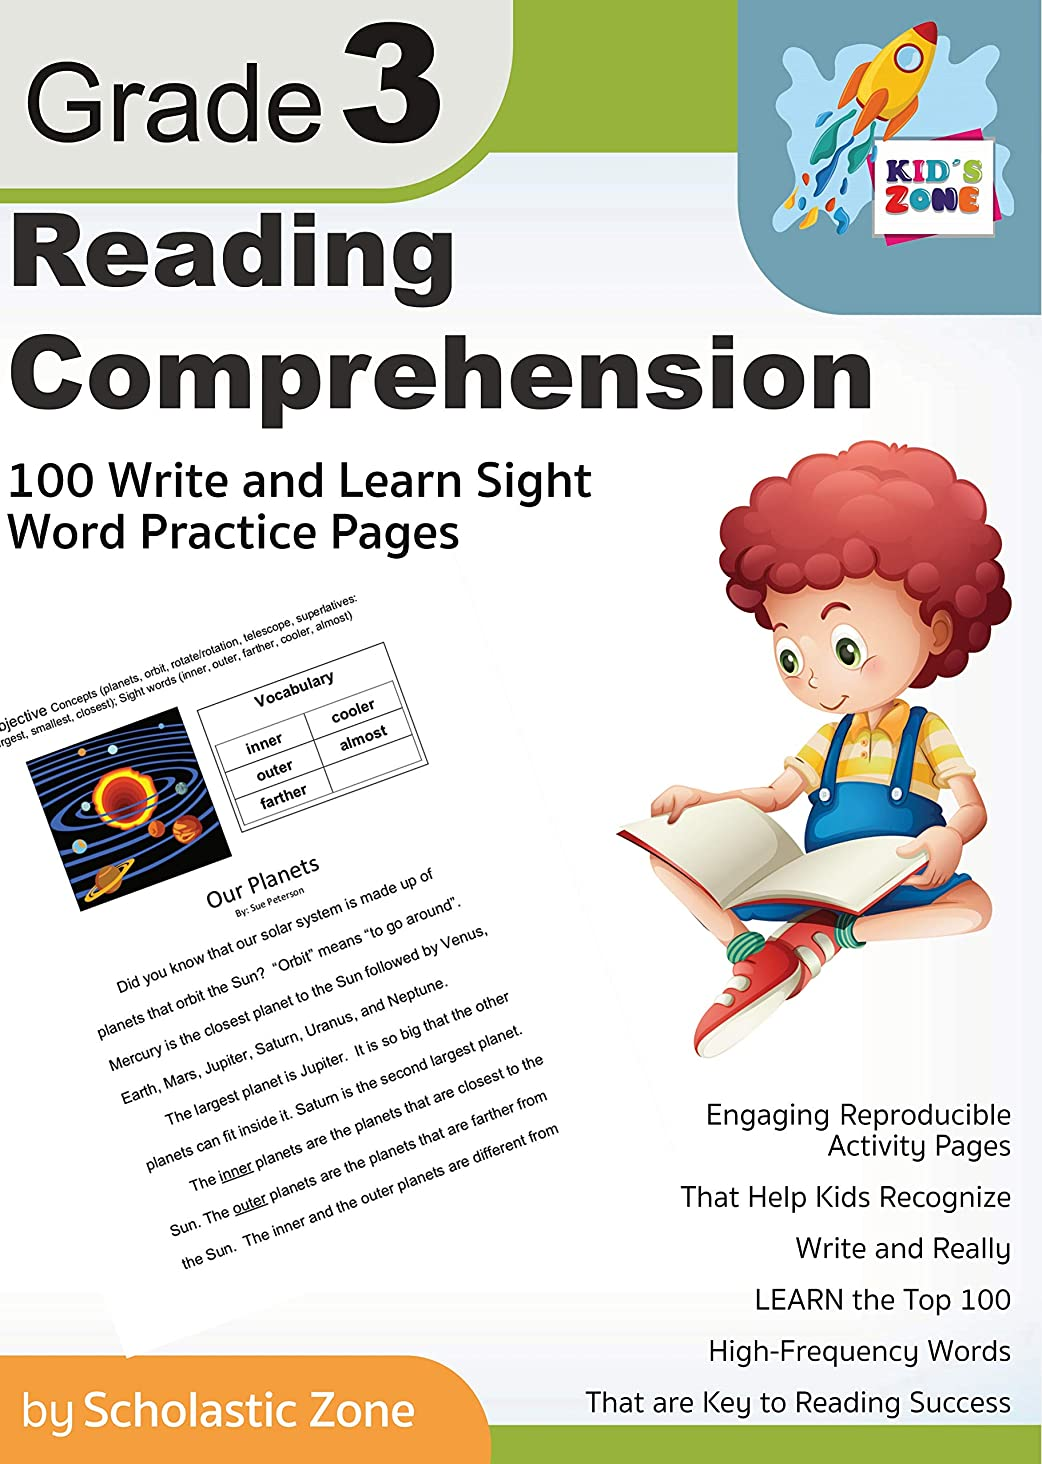 マスタード発生器バンクReading Comprehension Grade 3, 100 Write-and-Learn Sight Word Practice Pages: Engaging Reproducible Activity Pages That Help Kids Recognize, 100 High-Frequency ... (Home Workbooks Book 2) (English Edition)